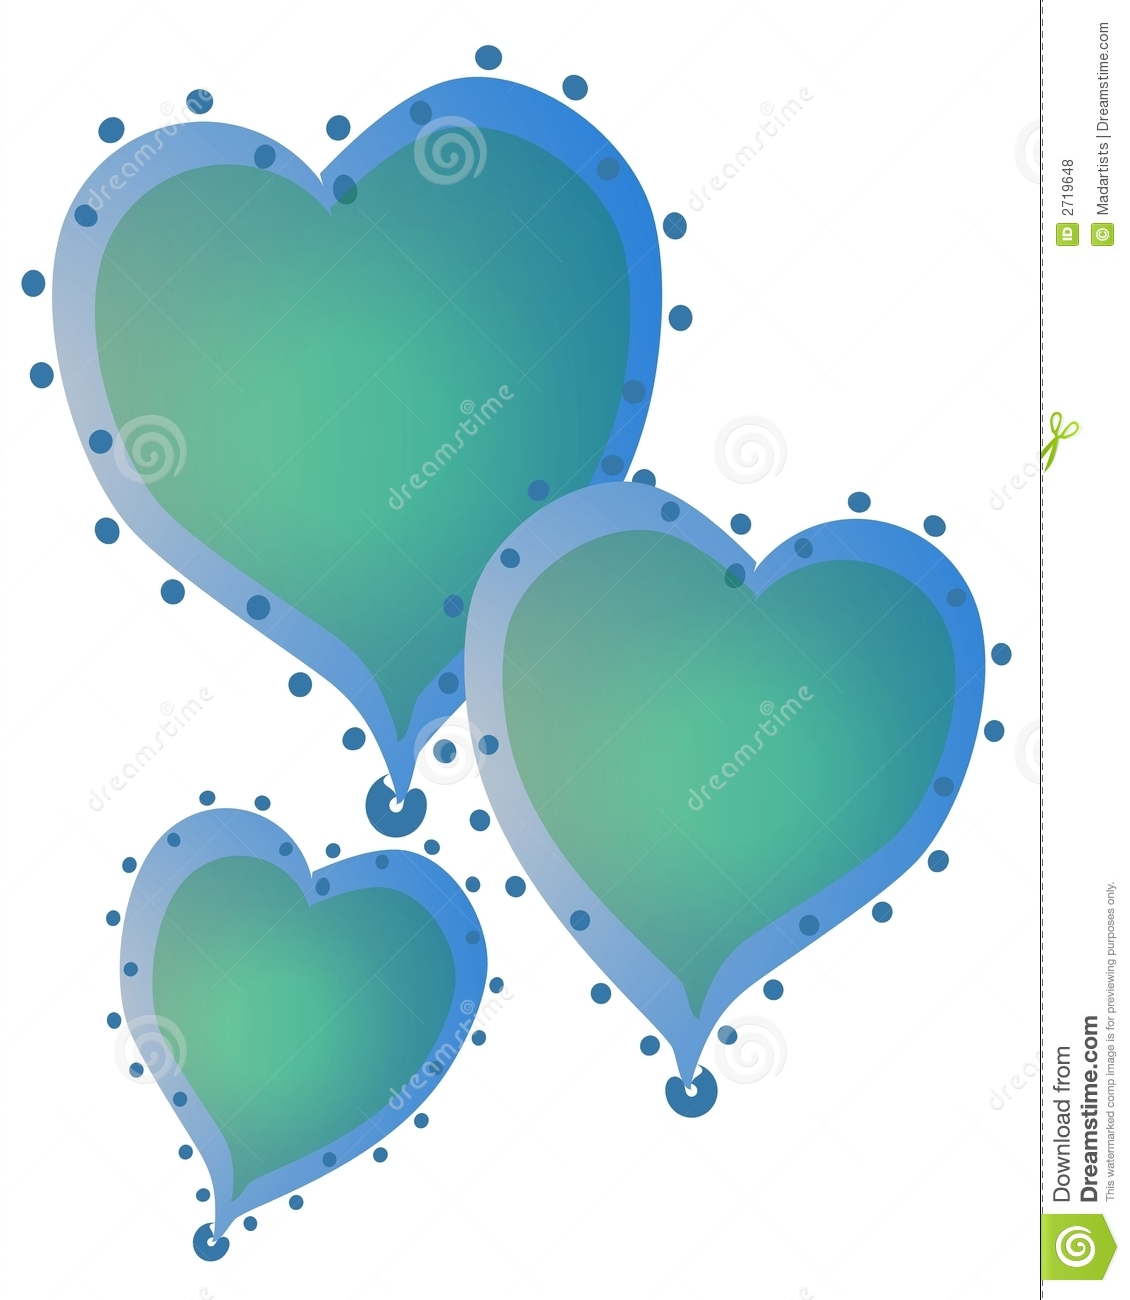 hight resolution of 3 blue color hearts with gradient colors and decorated with dots around the edges